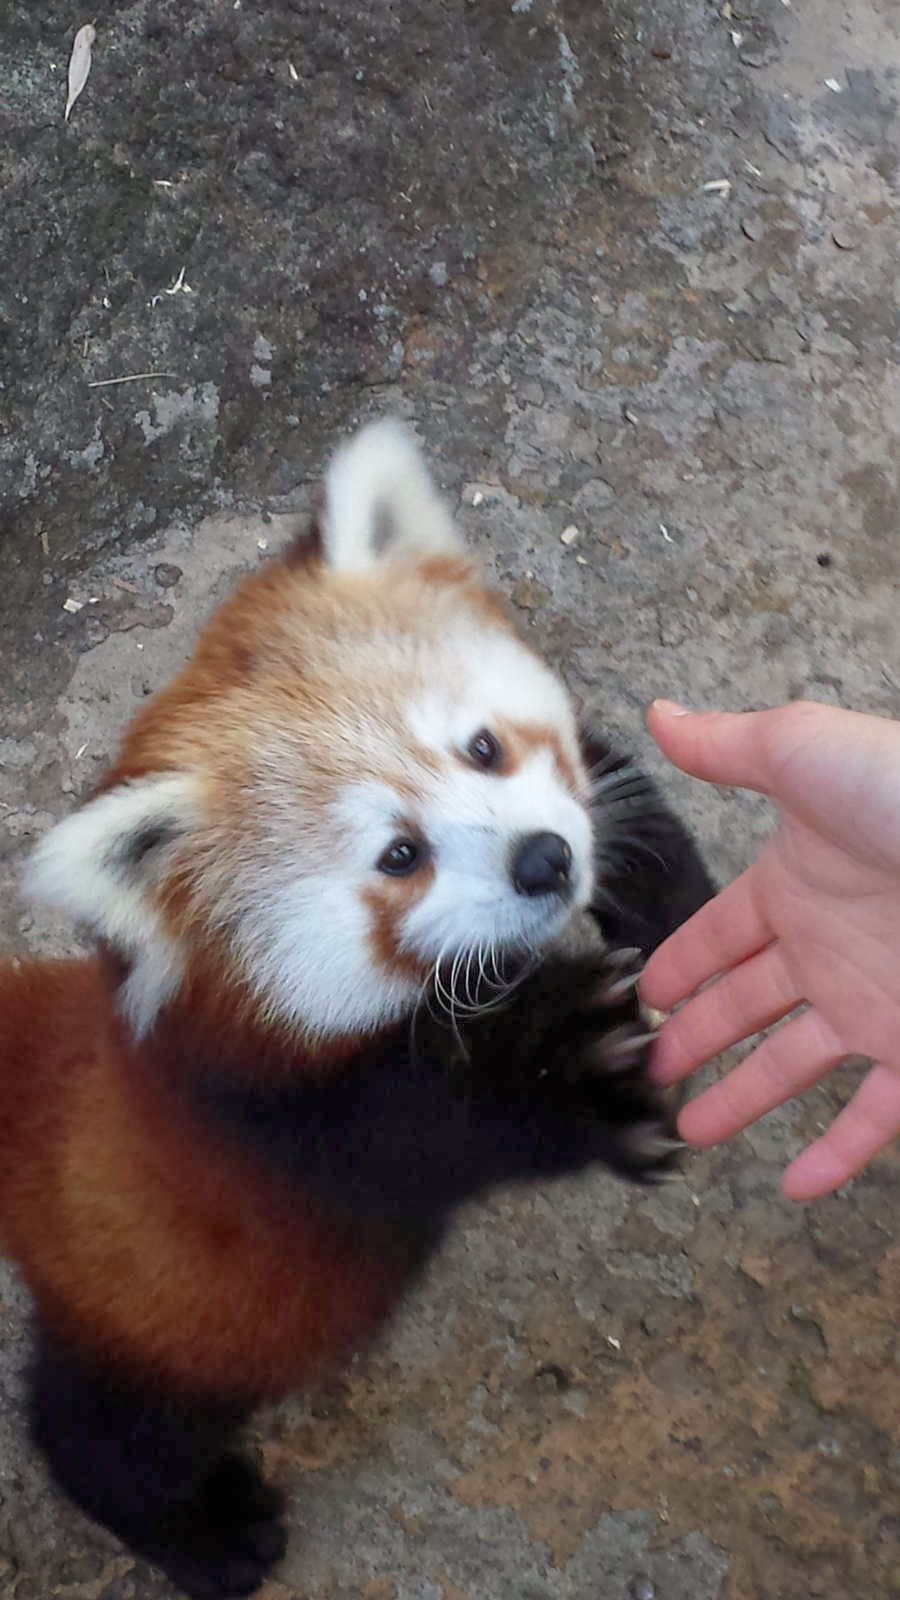 Funny animals of the week - 10 January 2014 (35 pics), red panda shakes hand